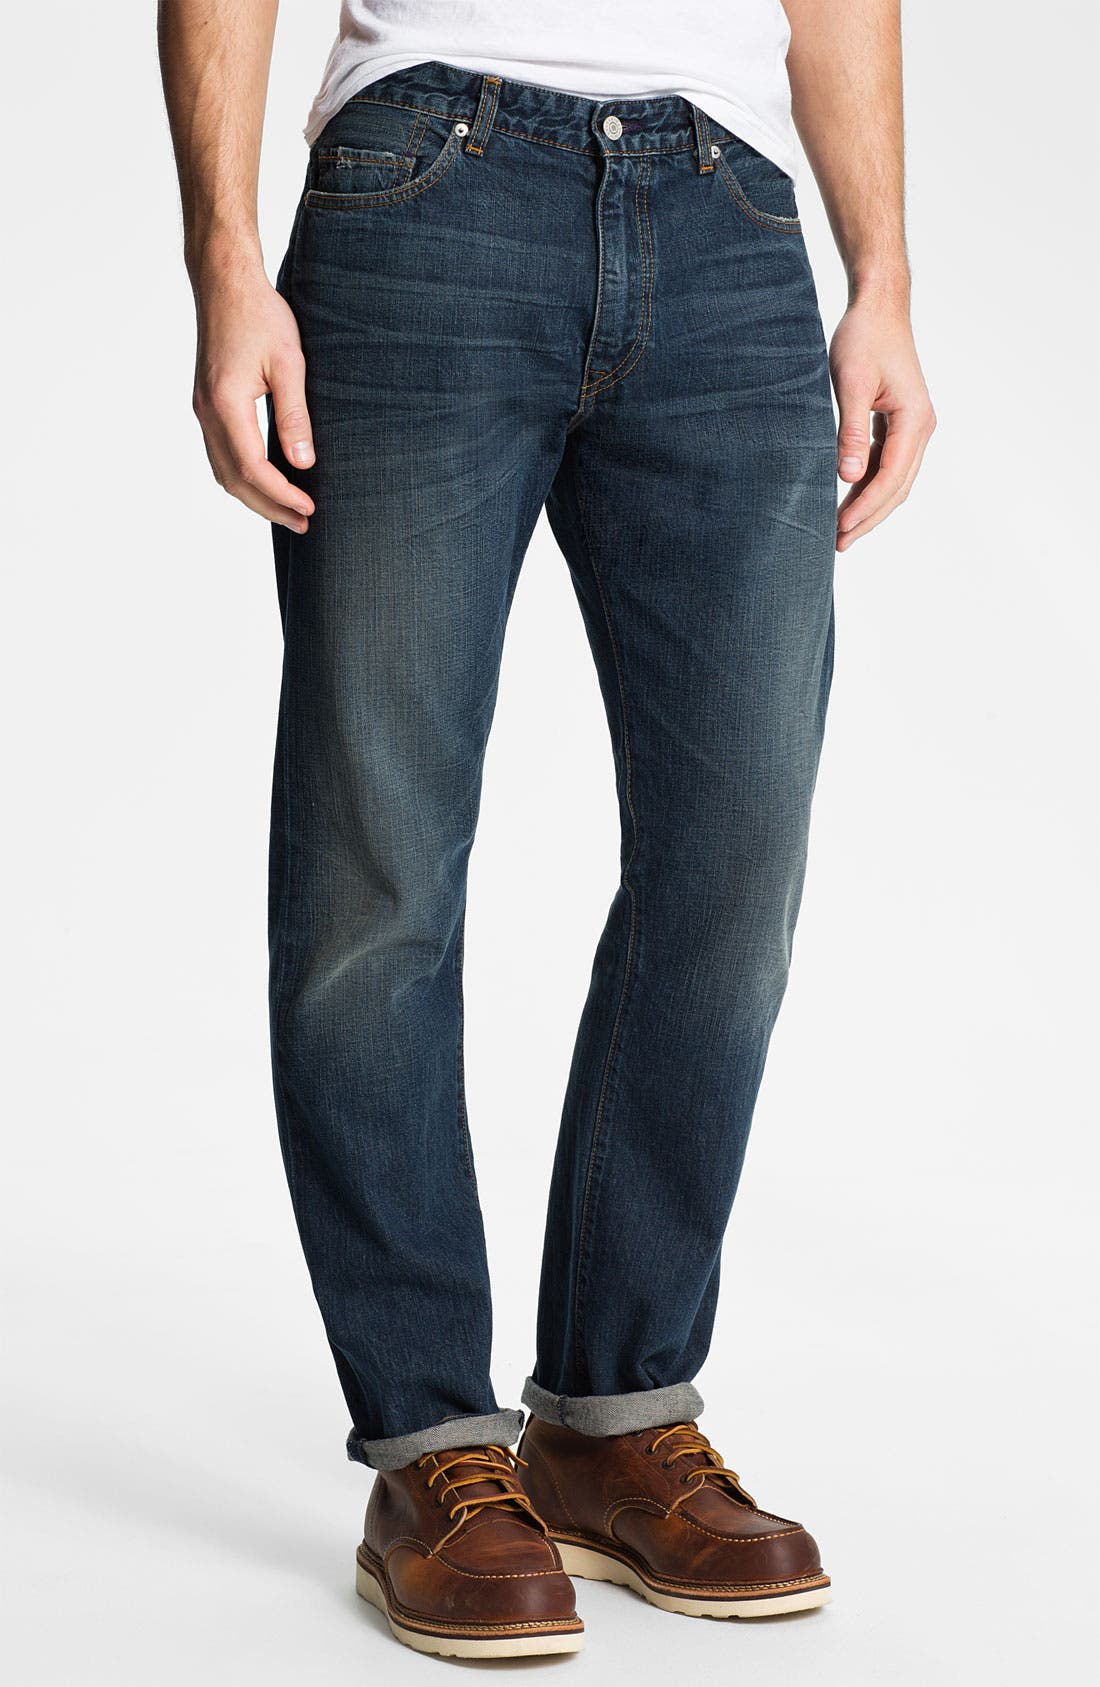 Alternate Image 1 Selected - Levi's® Made & Crafted™ 'Cutter' Relaxed Straight Leg Jeans (Vernon)